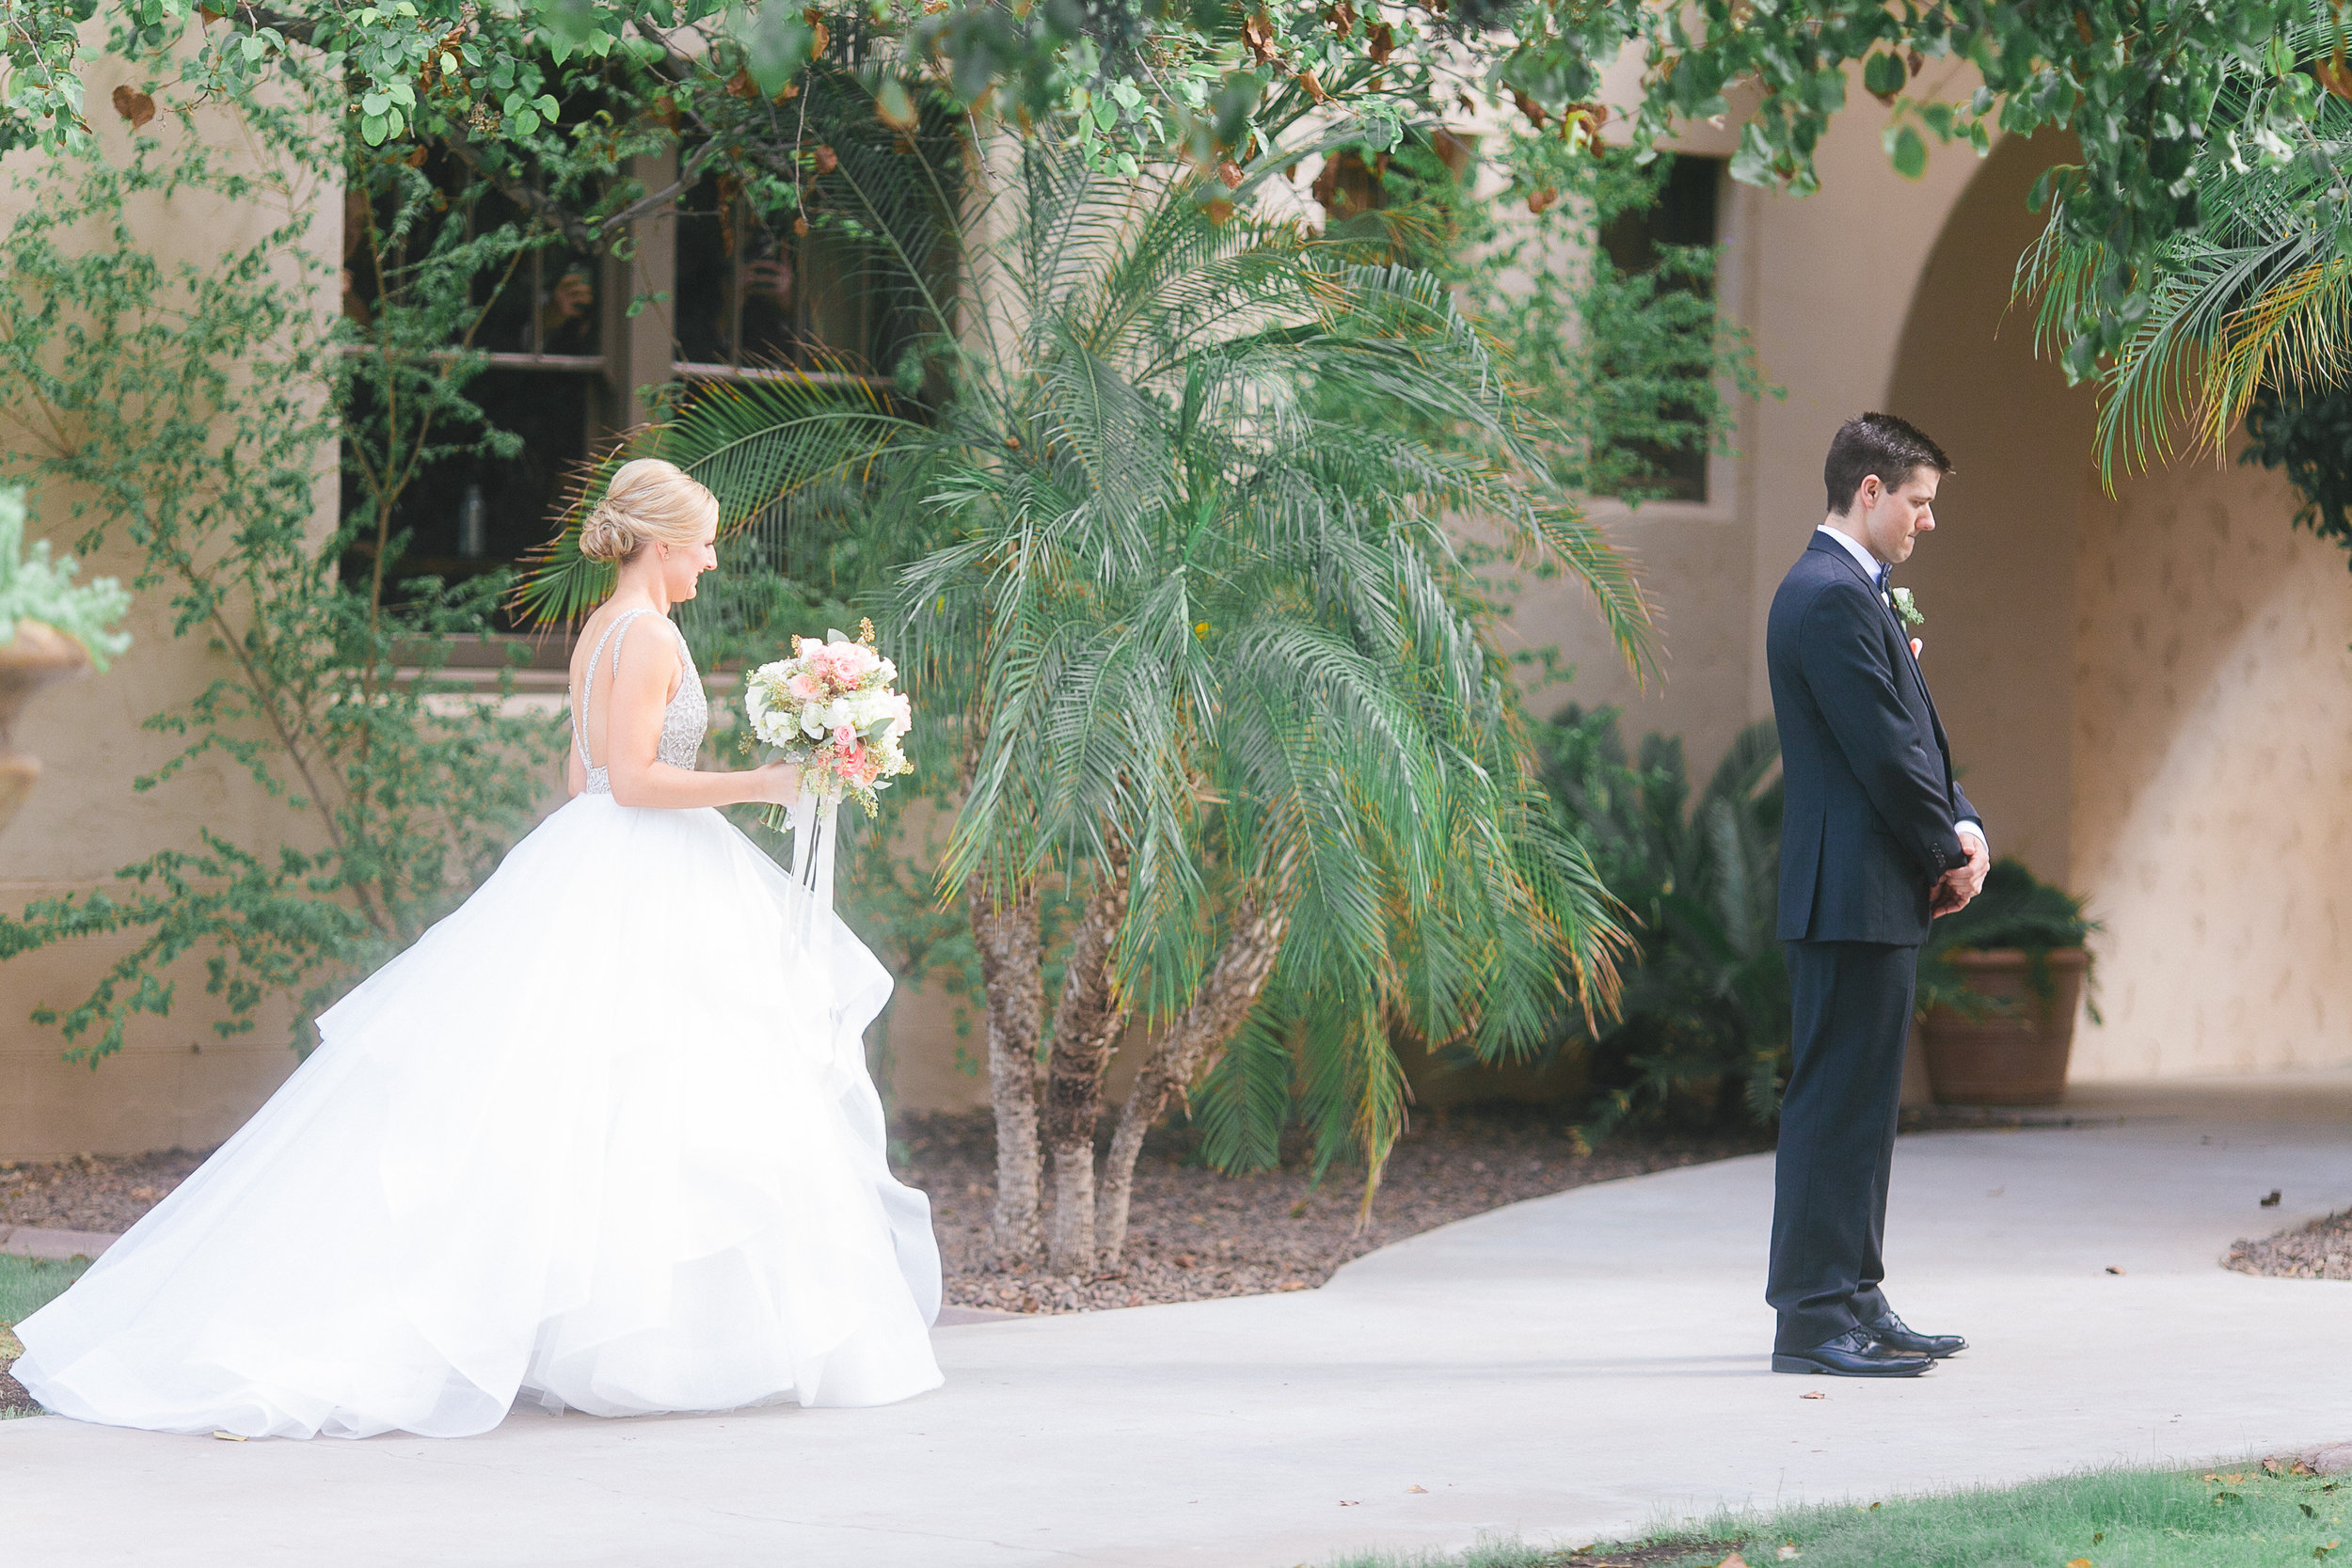 wedding, arizona wedding, wedding dress, bride, wedding planner, phoenix wedding planner, scottsdale wedding planner